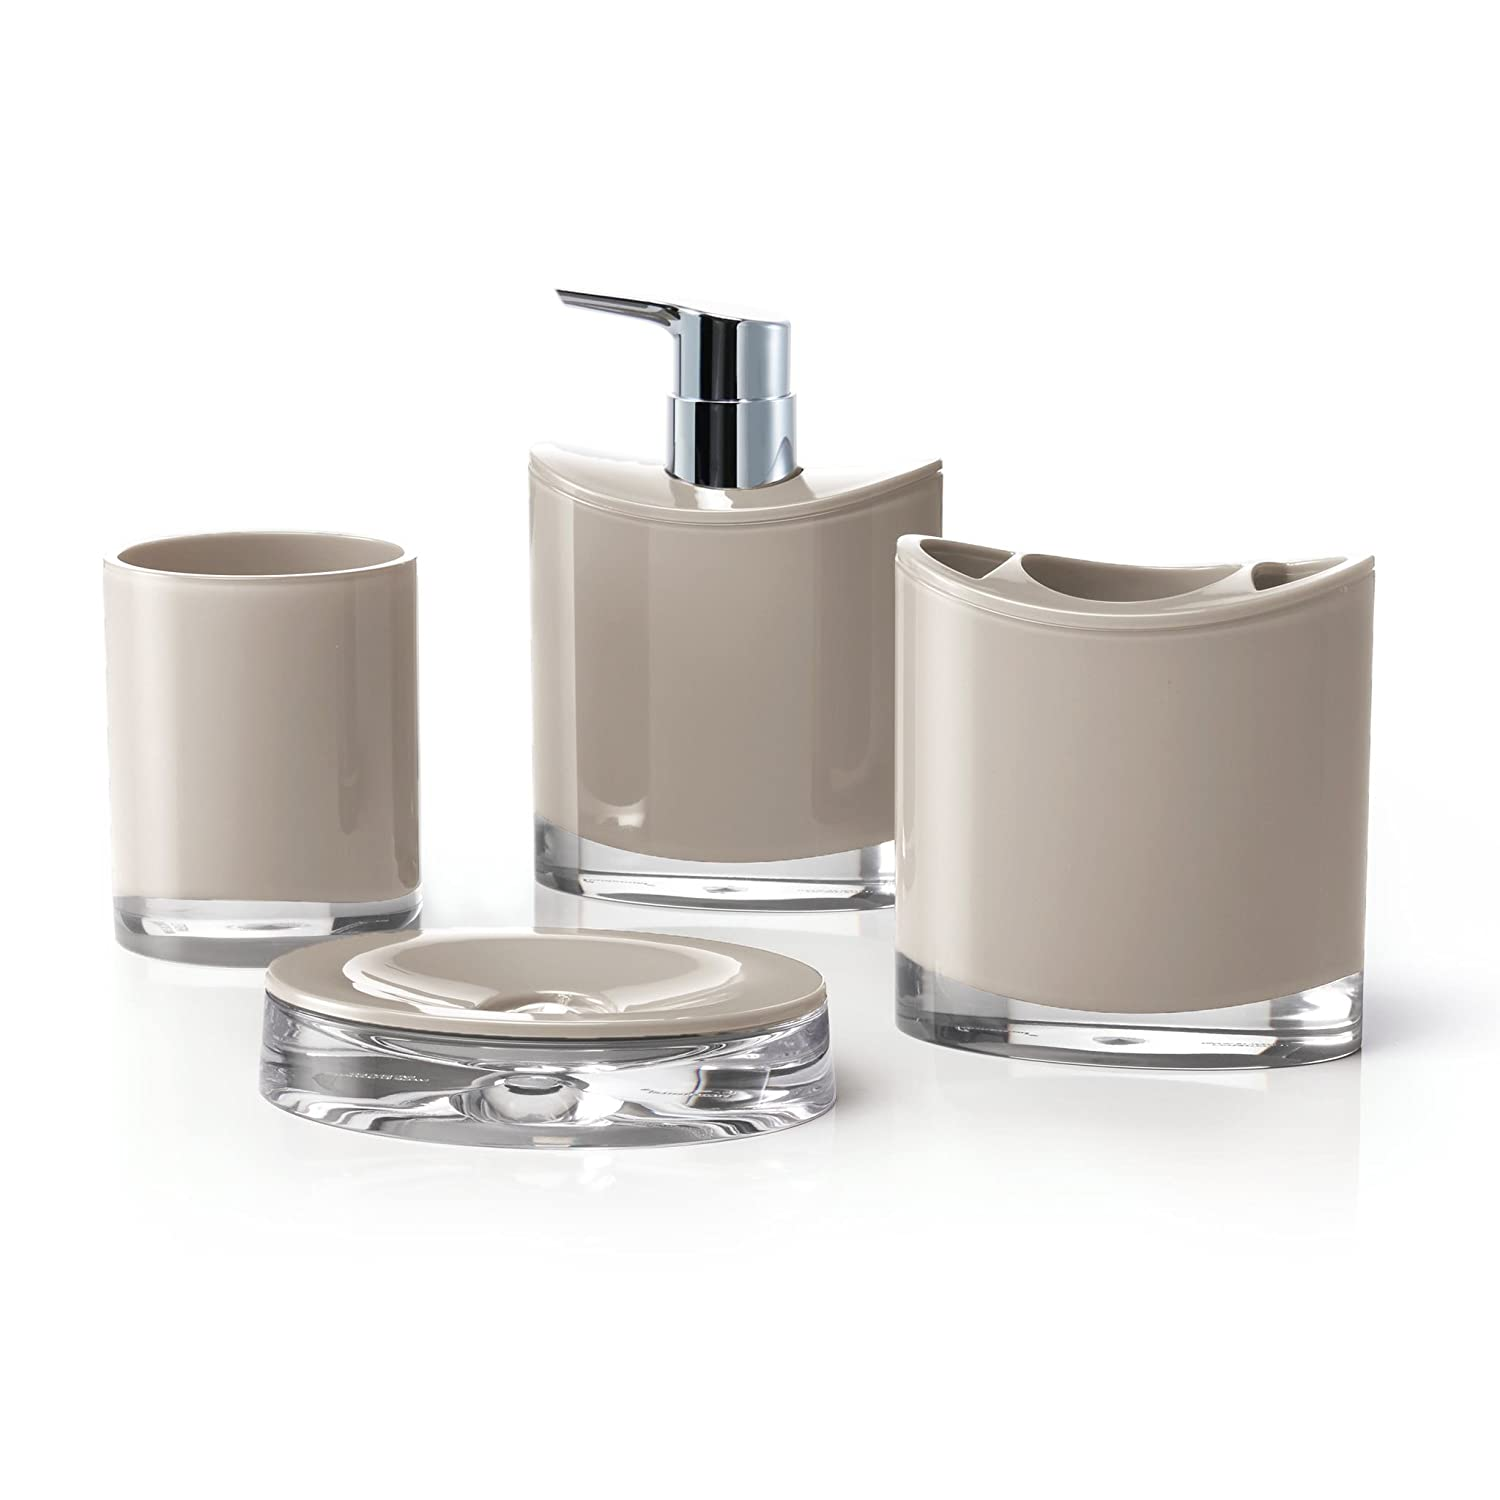 CDM product IMMANUEL Optic Designer 4-Piece Classy, Aesthetic Bathroom Accessory Set (includes Tumbler, Toothbrush Holder, Lotion Dispenser and Soap Dish), Made with Durable Acrylic – Variety of Colors - Brown big image